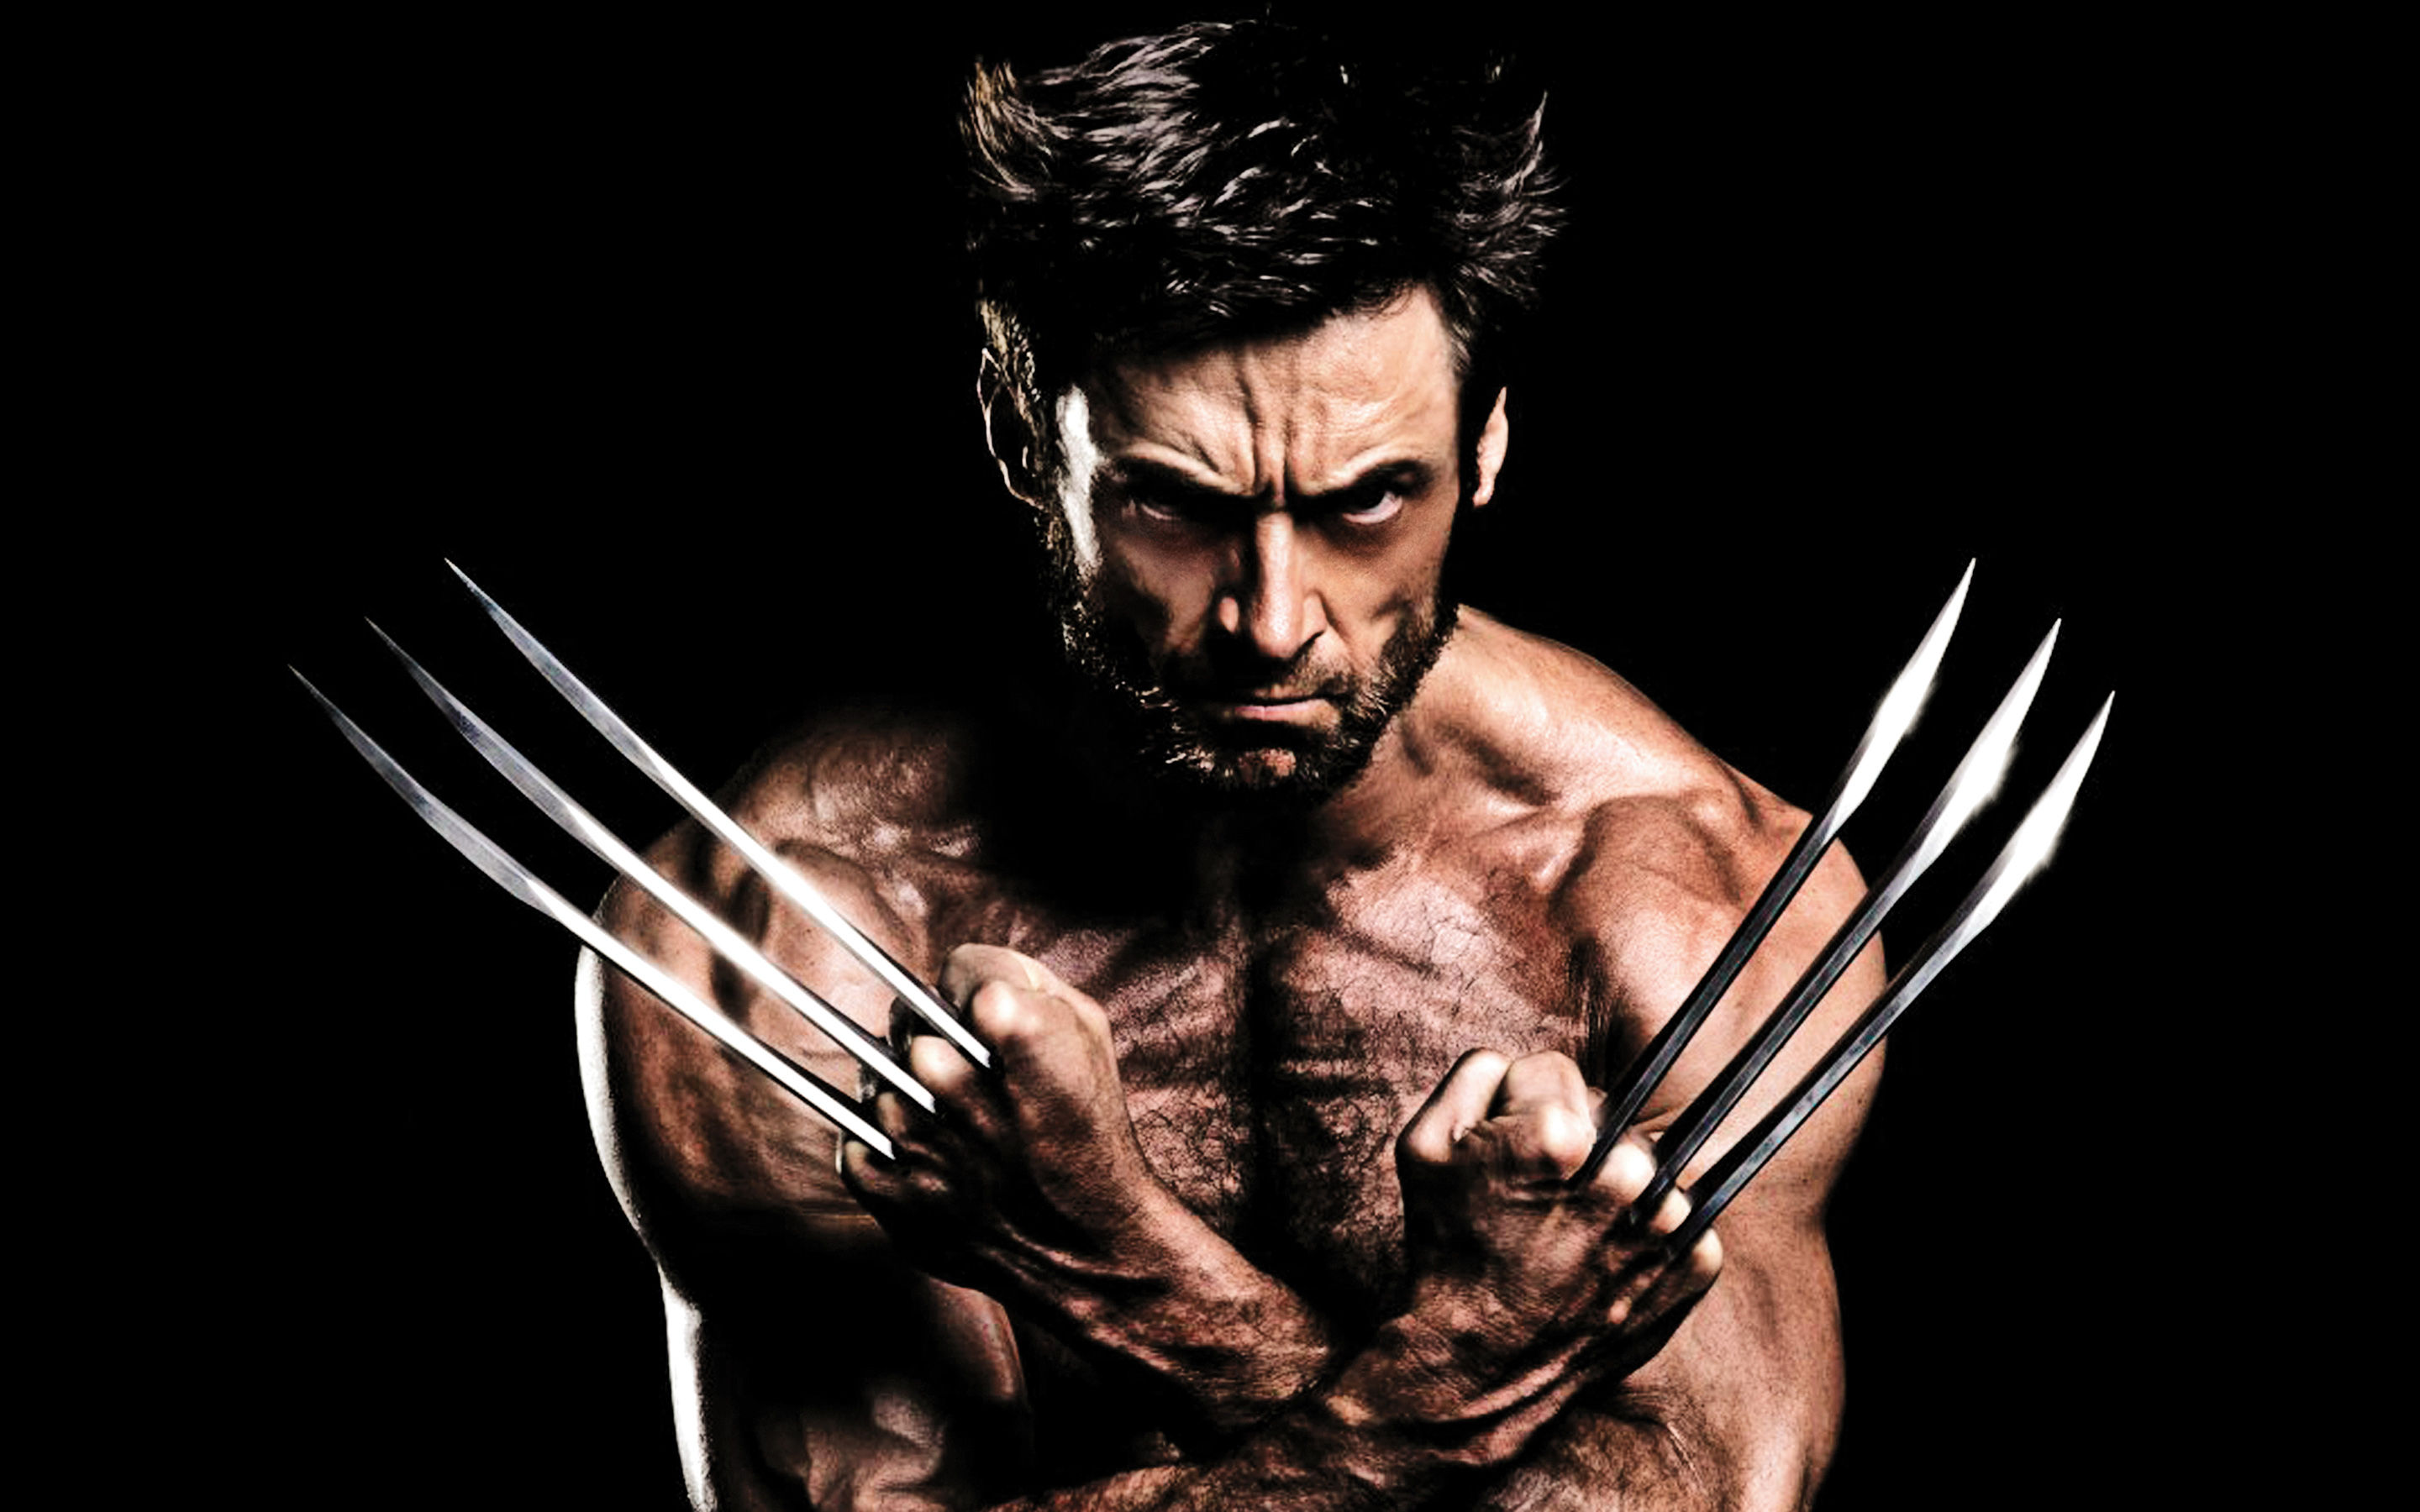 hugh-jackman-muscles-claws-in-the-wolverine.jpg